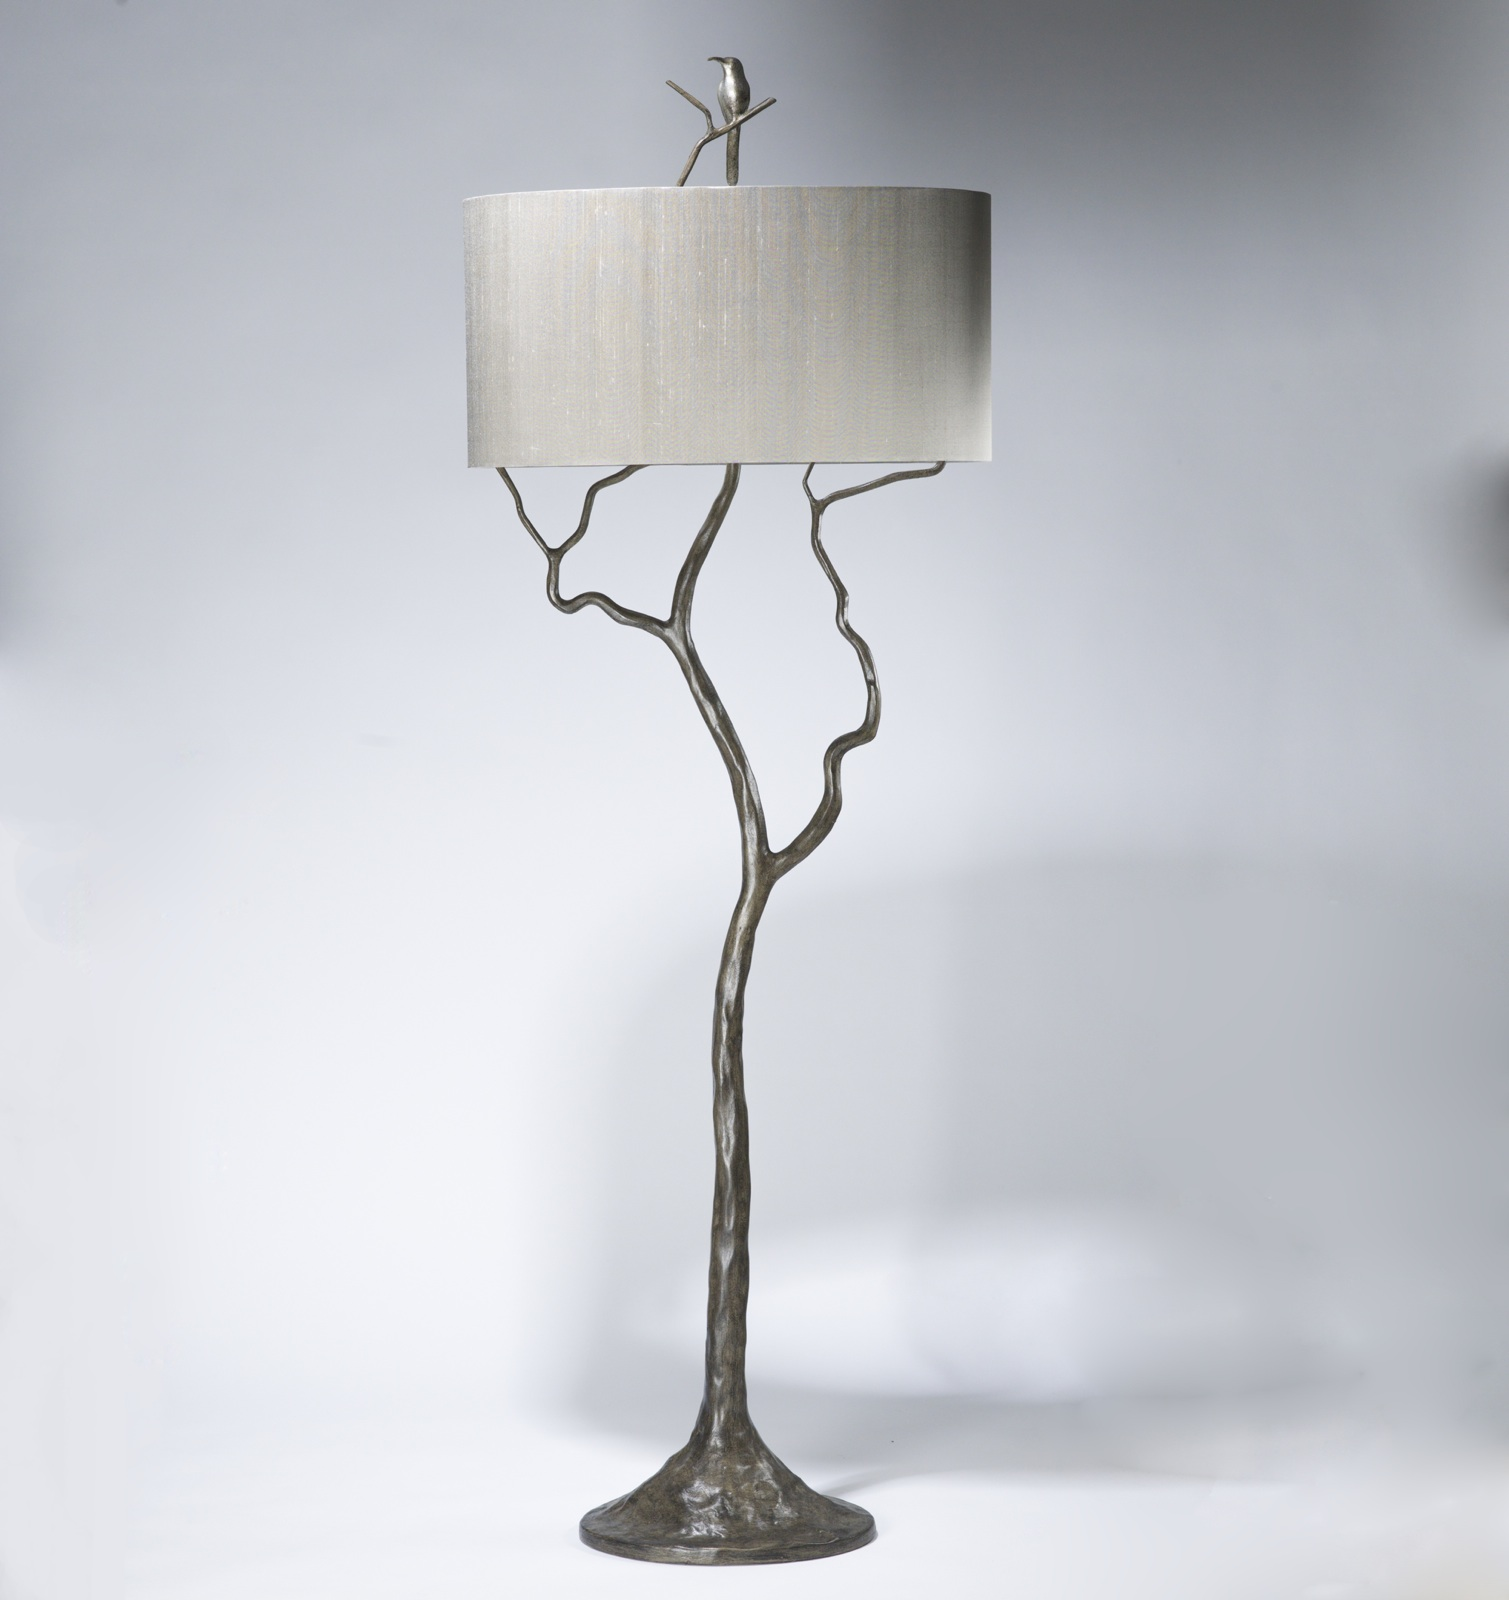 Floor tree lamp  10 lamps covering any type of lighting